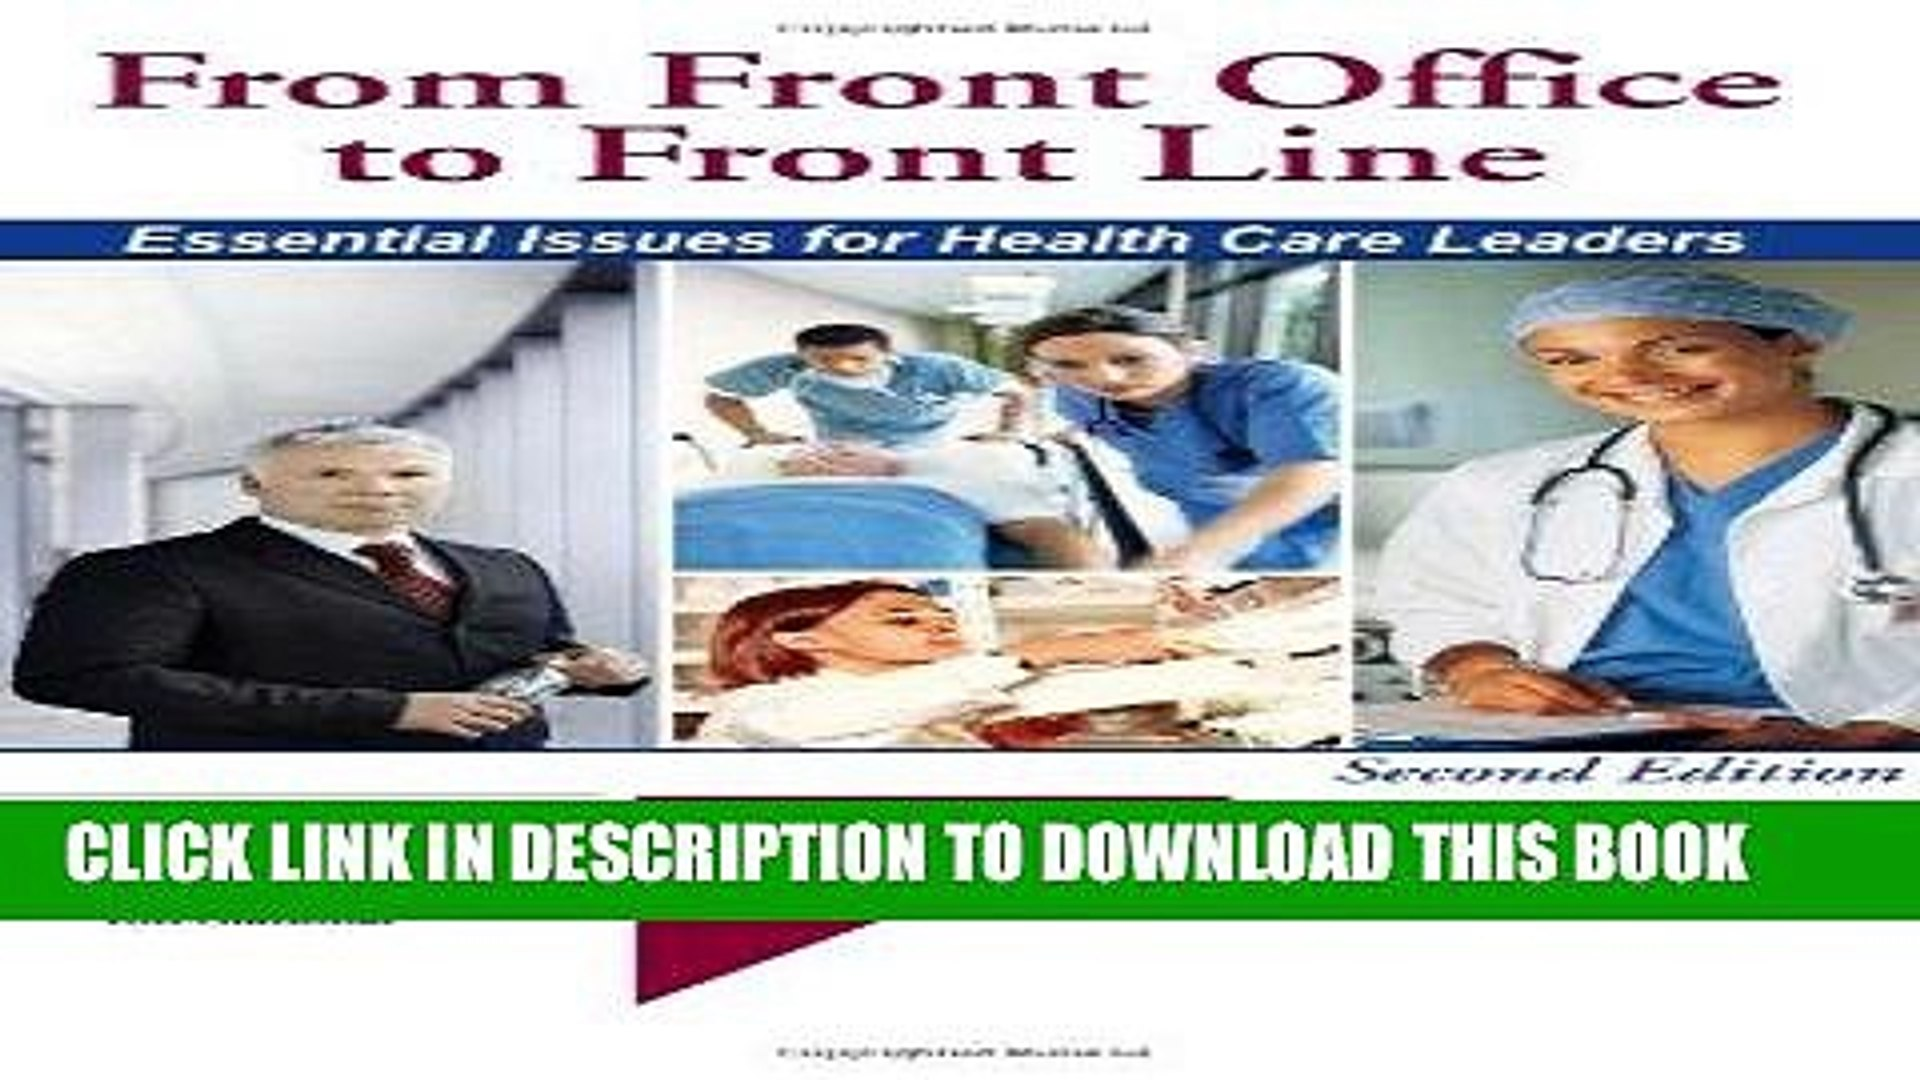 [READ] Kindle From Front Office to Front Line: Essential Issues for Health Care Leaders, 2nd